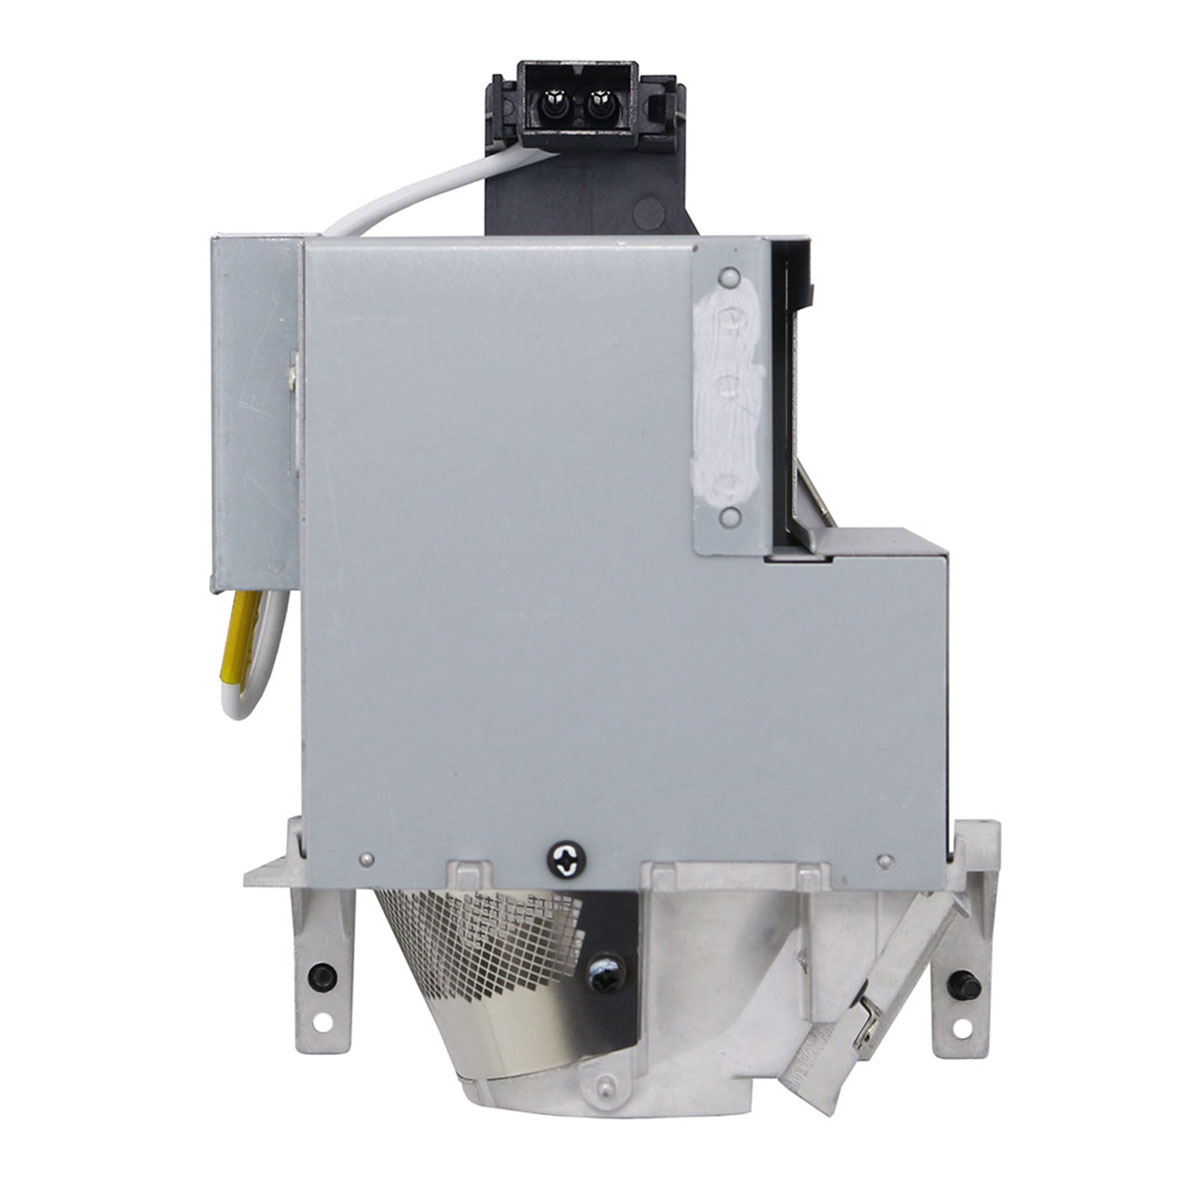 Original Philips Projector Lamp Replacement with Housing for Optoma W515 - image 3 de 5